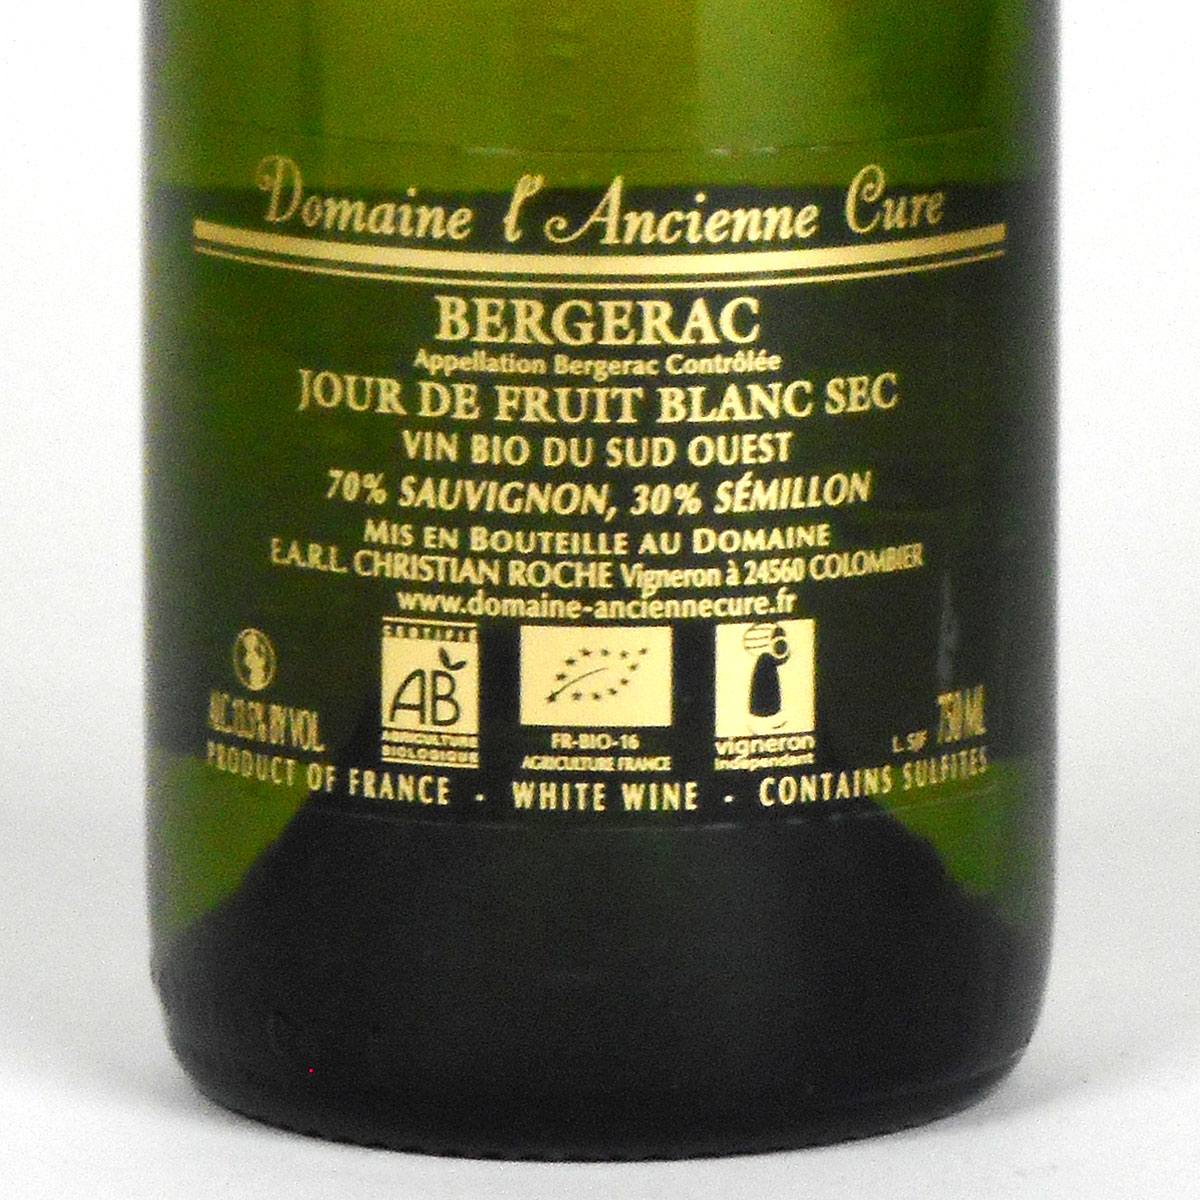 Bergerac: Domaine l'Ancienne Cure 'Jour de Fruit' Blanc Sec 2019 - Wine Bottle Rear Label